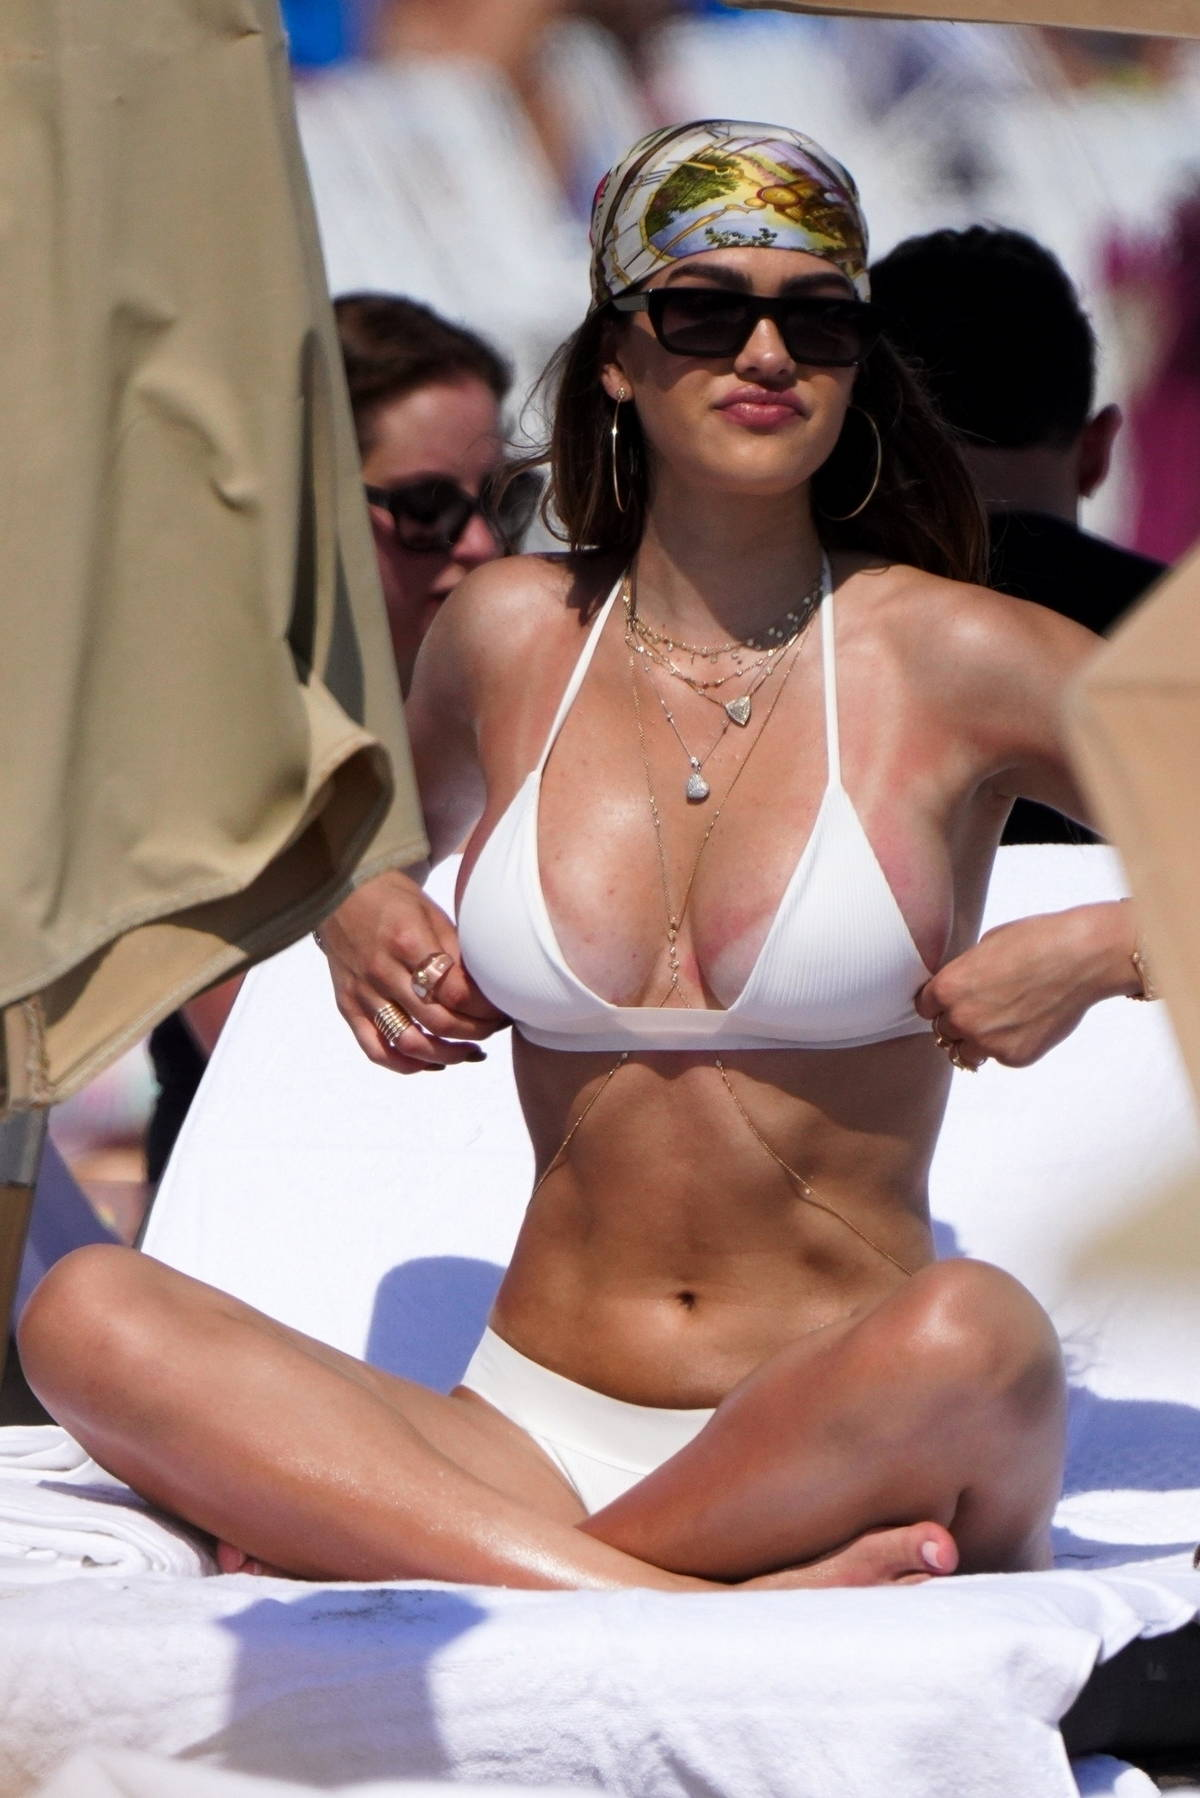 Amelia Hamlin soaks up the sun in a white bikini while enjoying the beach with Scott Disick on Valentine's Day in Miami, Florida